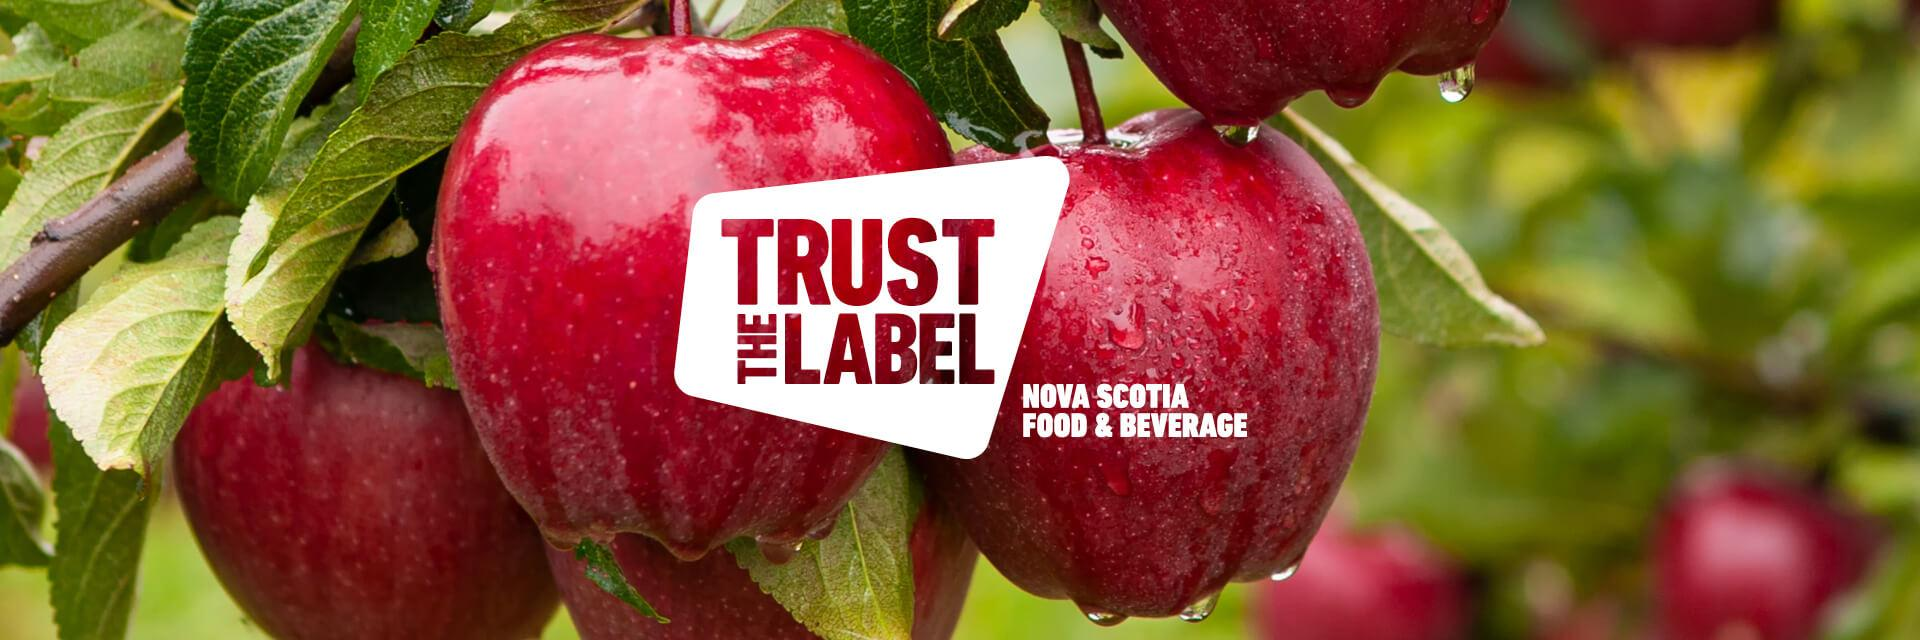 A 'Trust the Label' Nova Scotia Food and Beverage logo overlaid on a photo of red apples on a branch